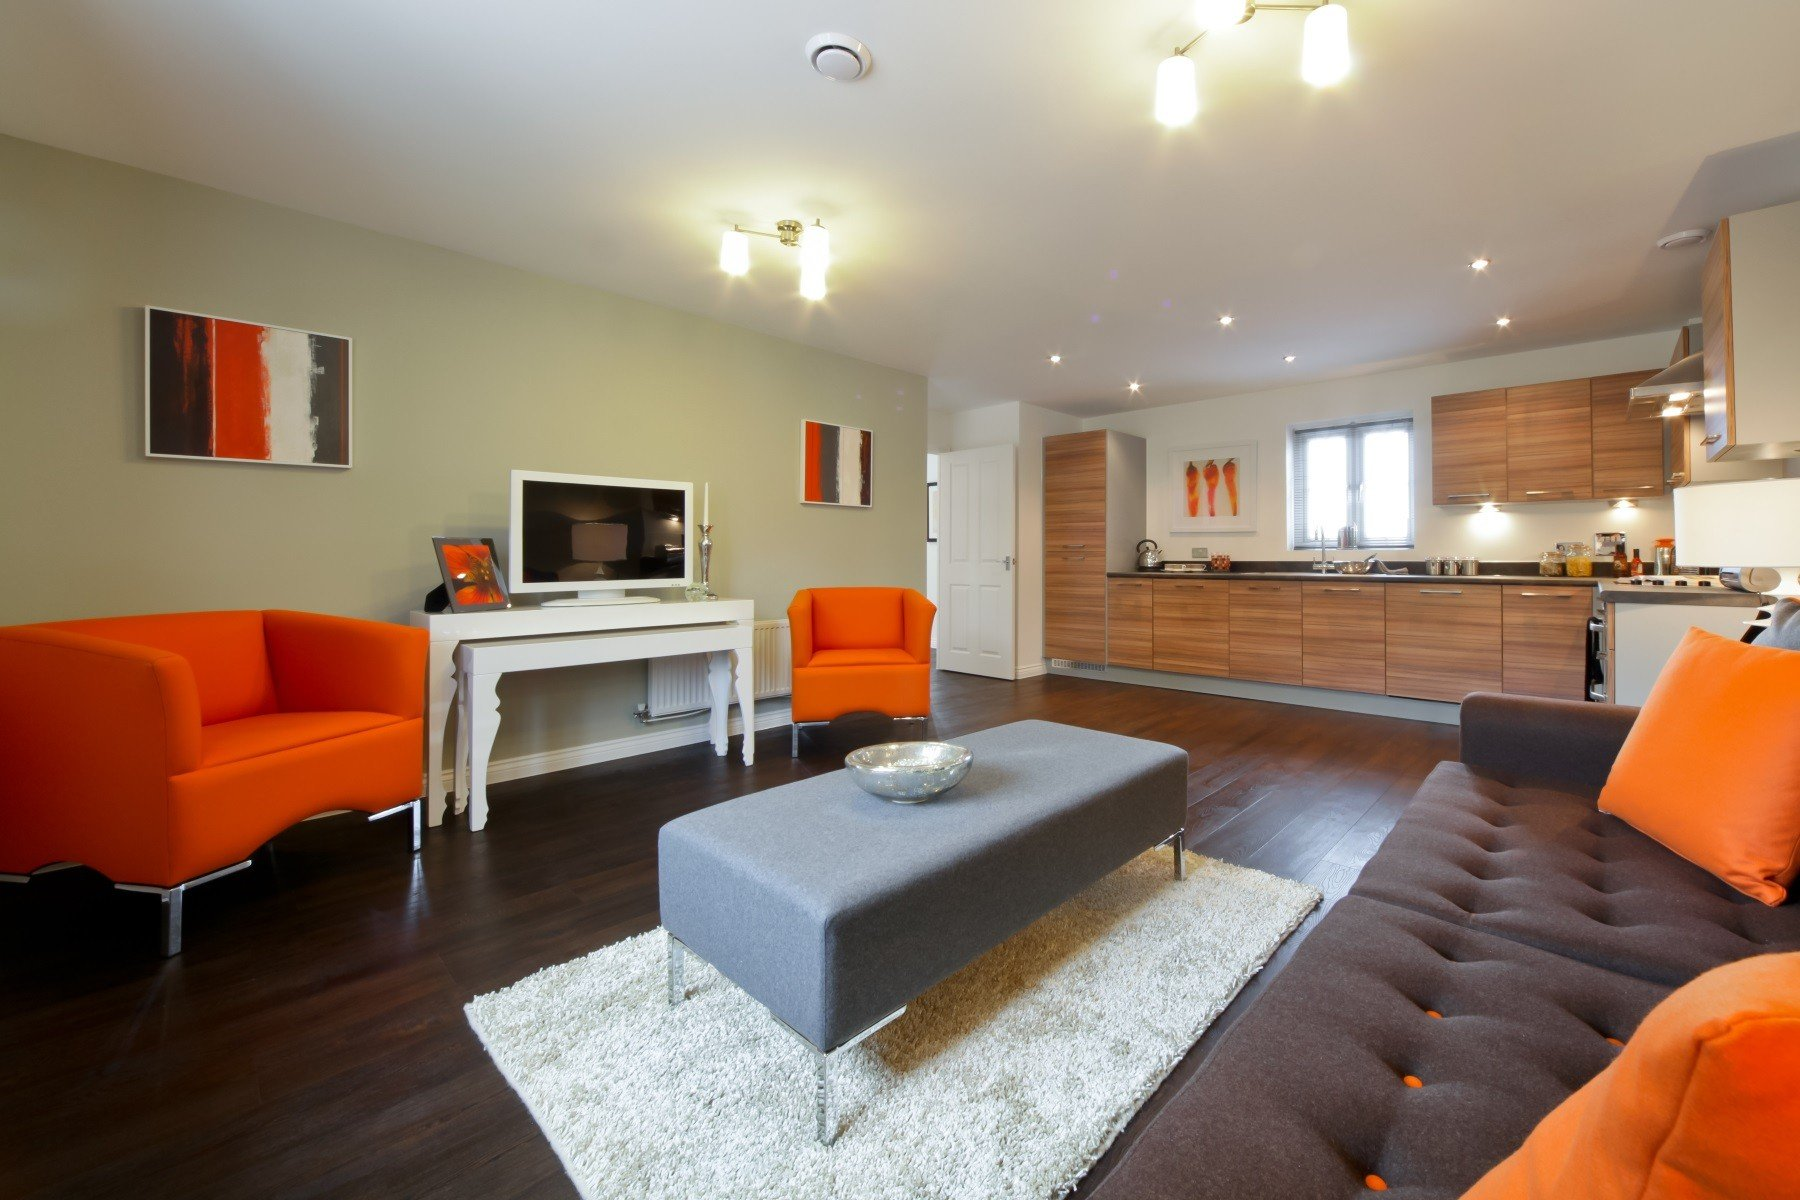 TW Exeter - Sherford - Rowan example living area 2